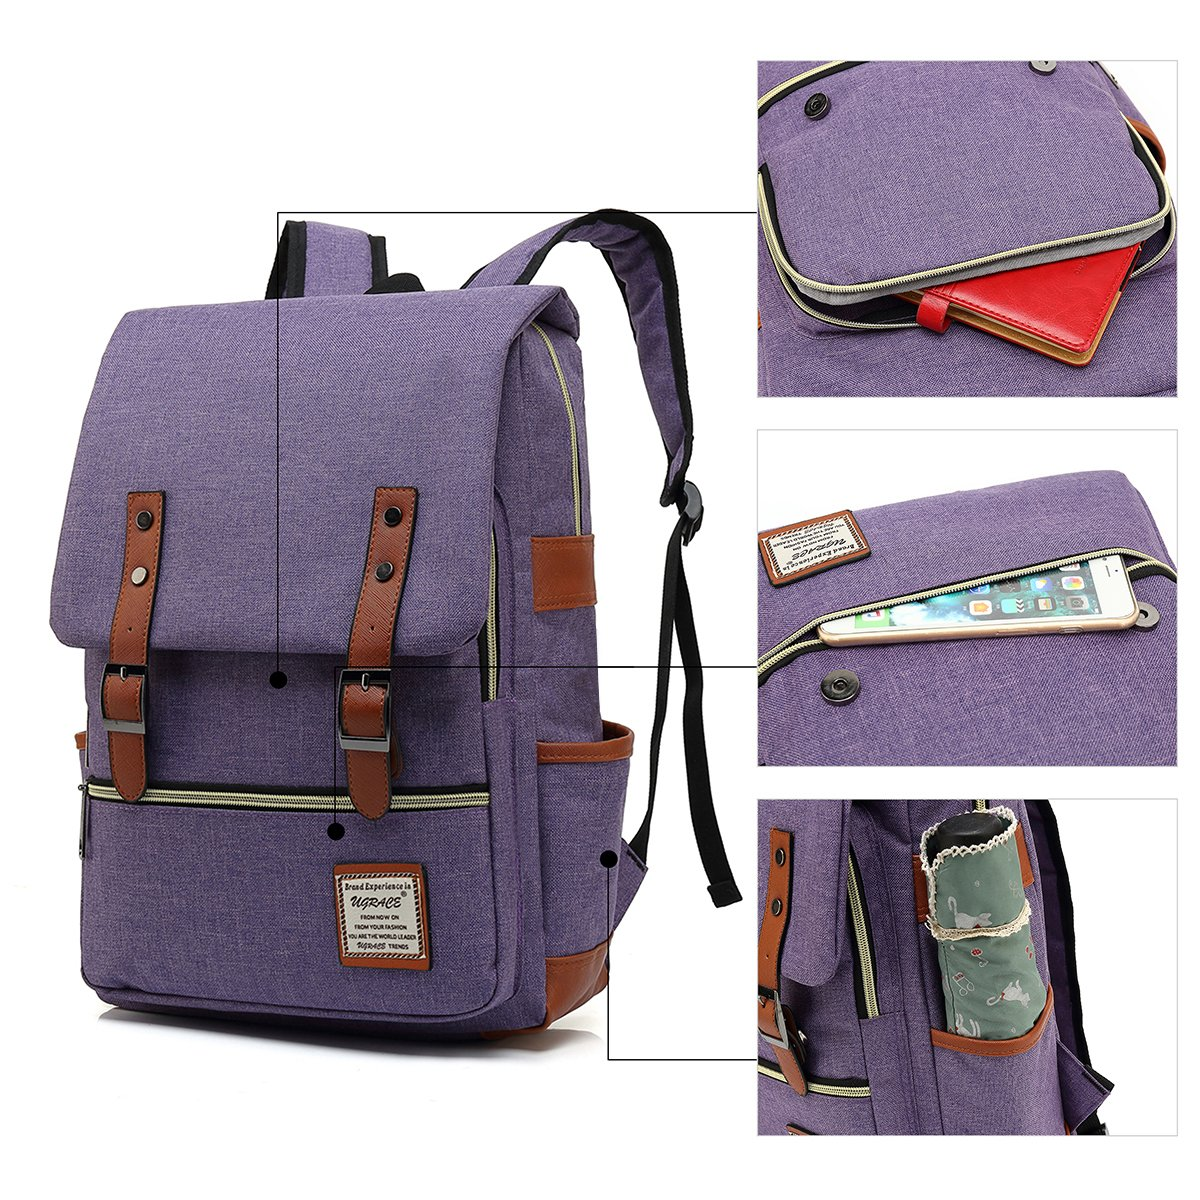 UGRACE Slim Business Laptop Backpack Elegant Casual Daypacks Outdoor Sports Rucksack School Shoulder Bag for Men Women, Tear Resistant Unique Travelling Backpack Fits up to 15.6Inch Macbook in Violet by UGRACE (Image #4)